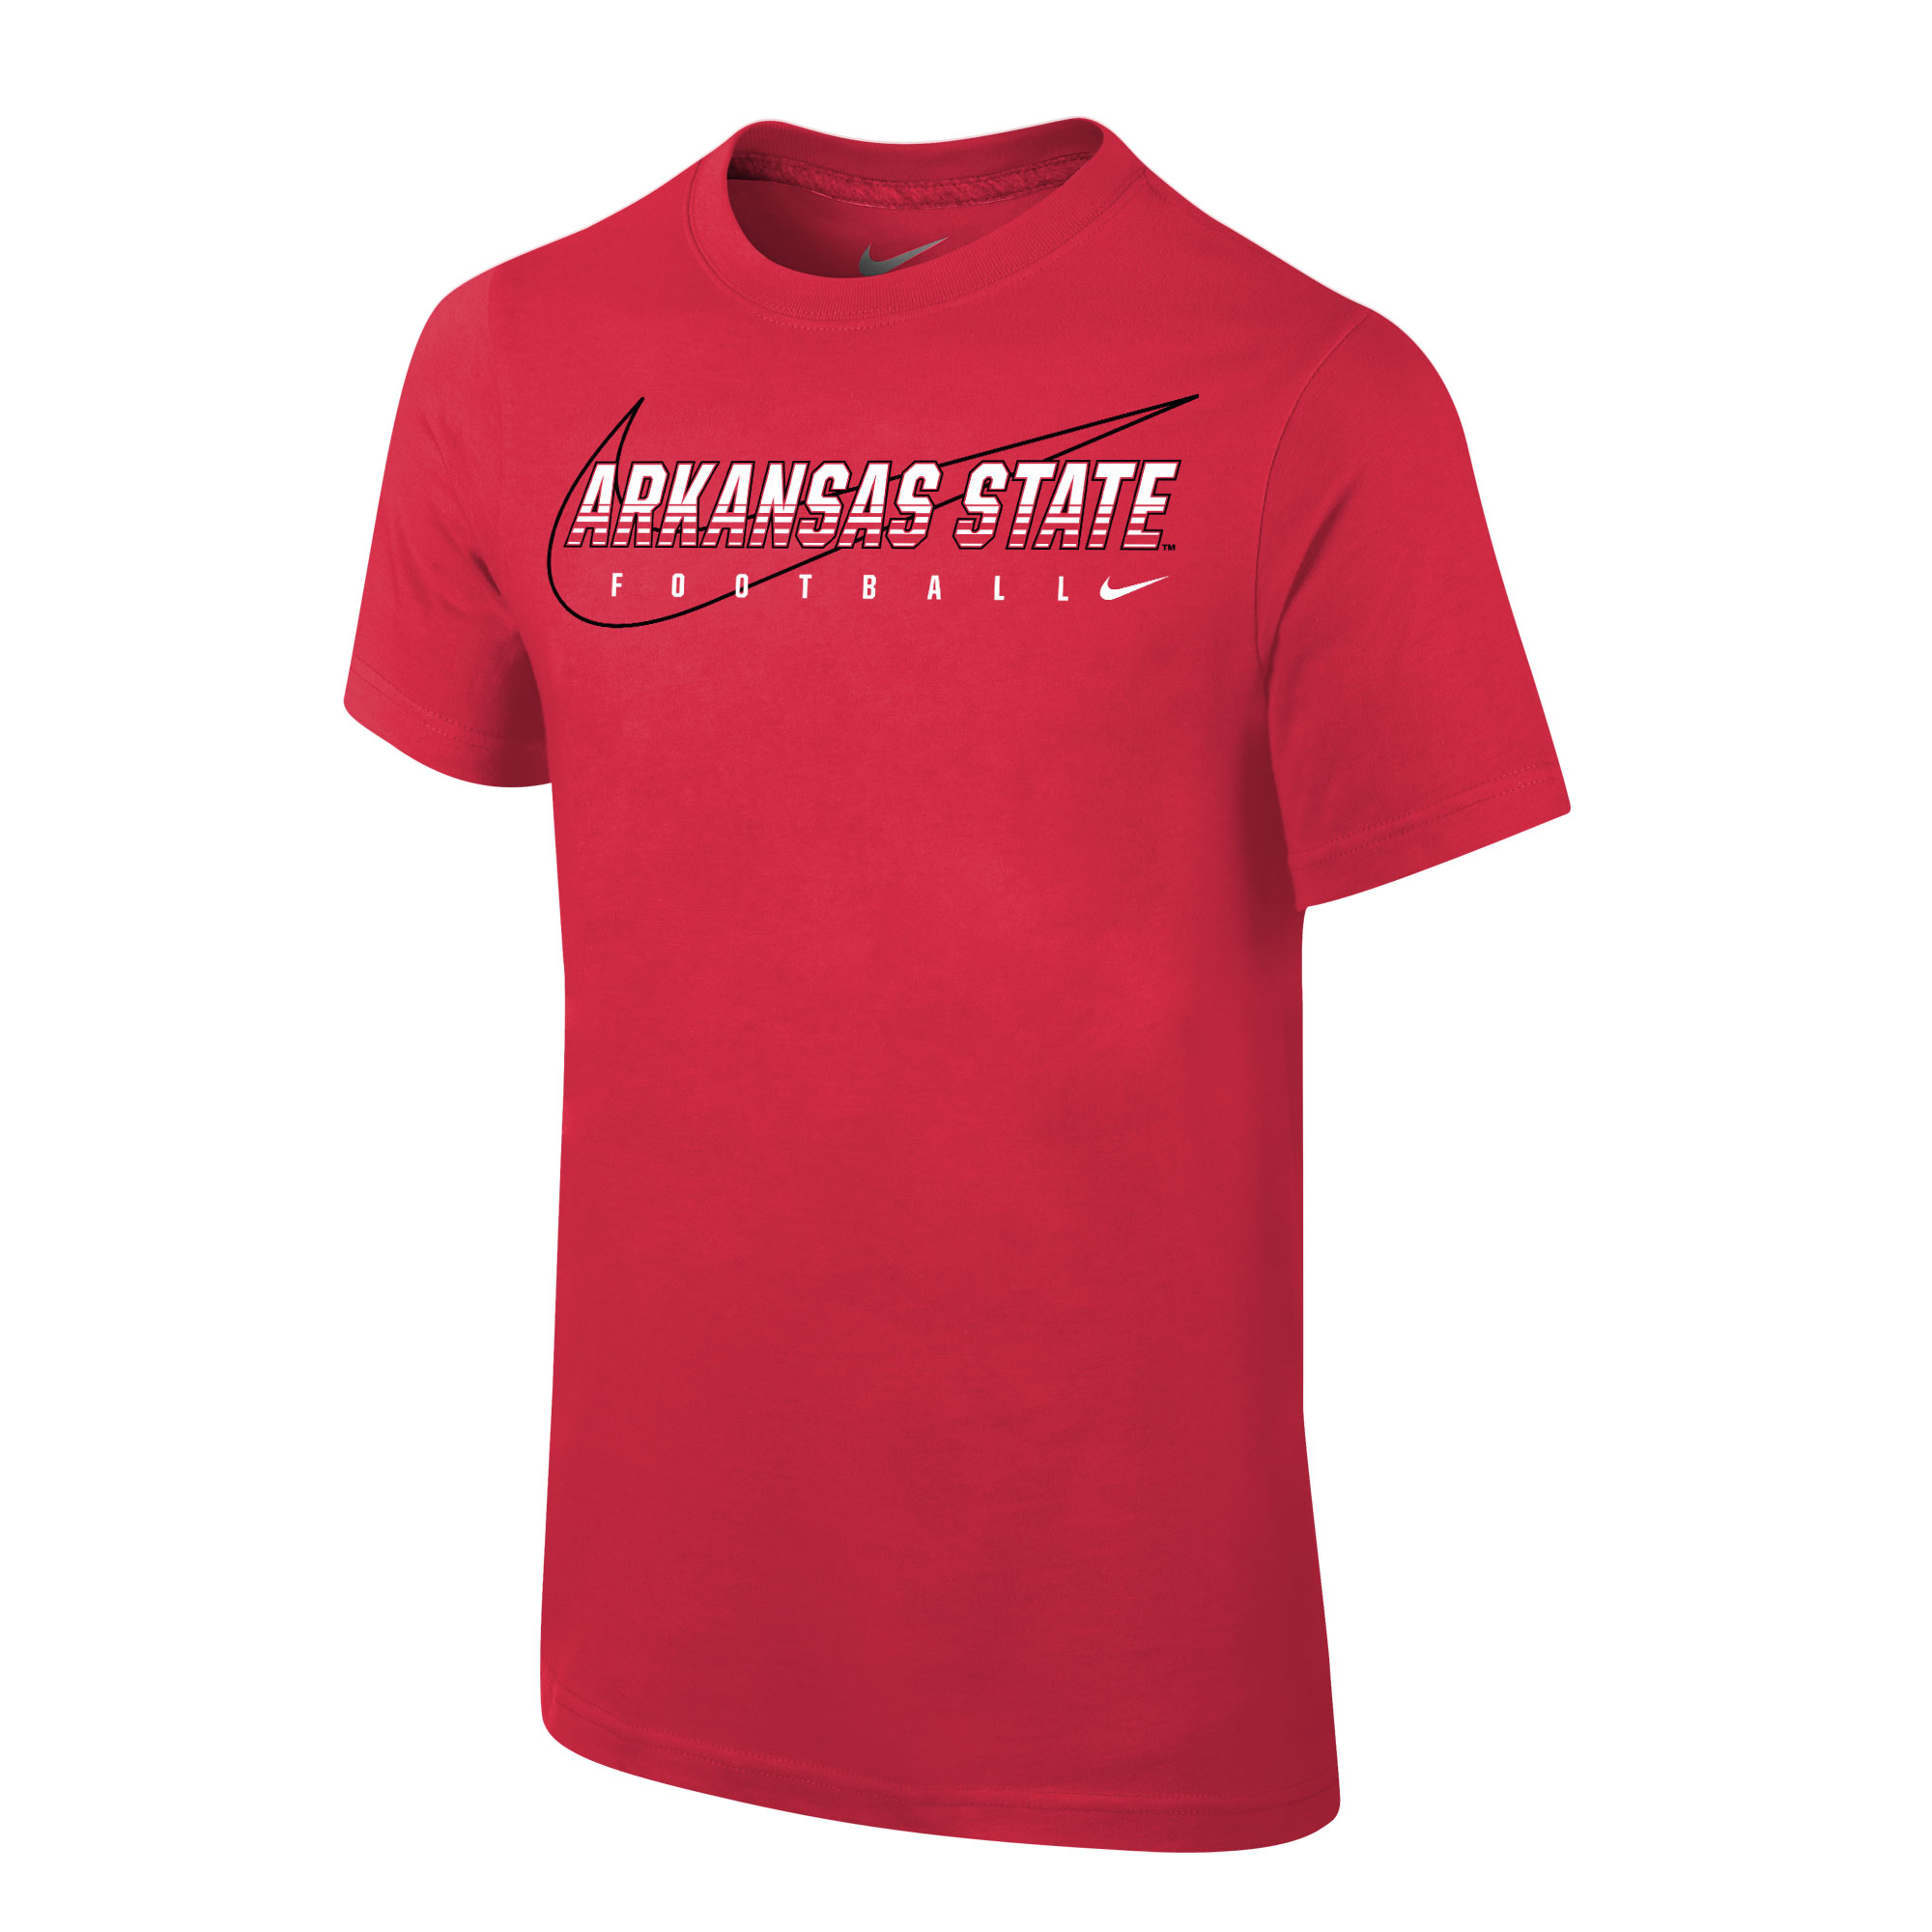 Arkansas State Football Youth T Shirt